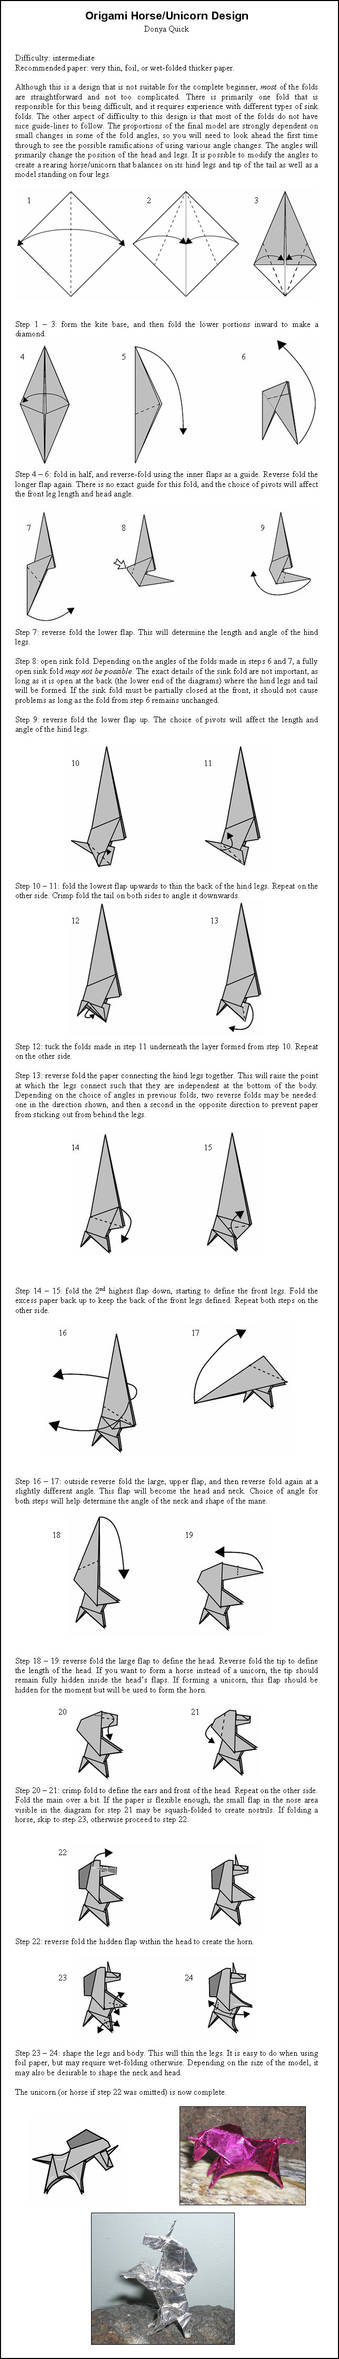 Origami Unicorn - Instructions by DonyaQuick